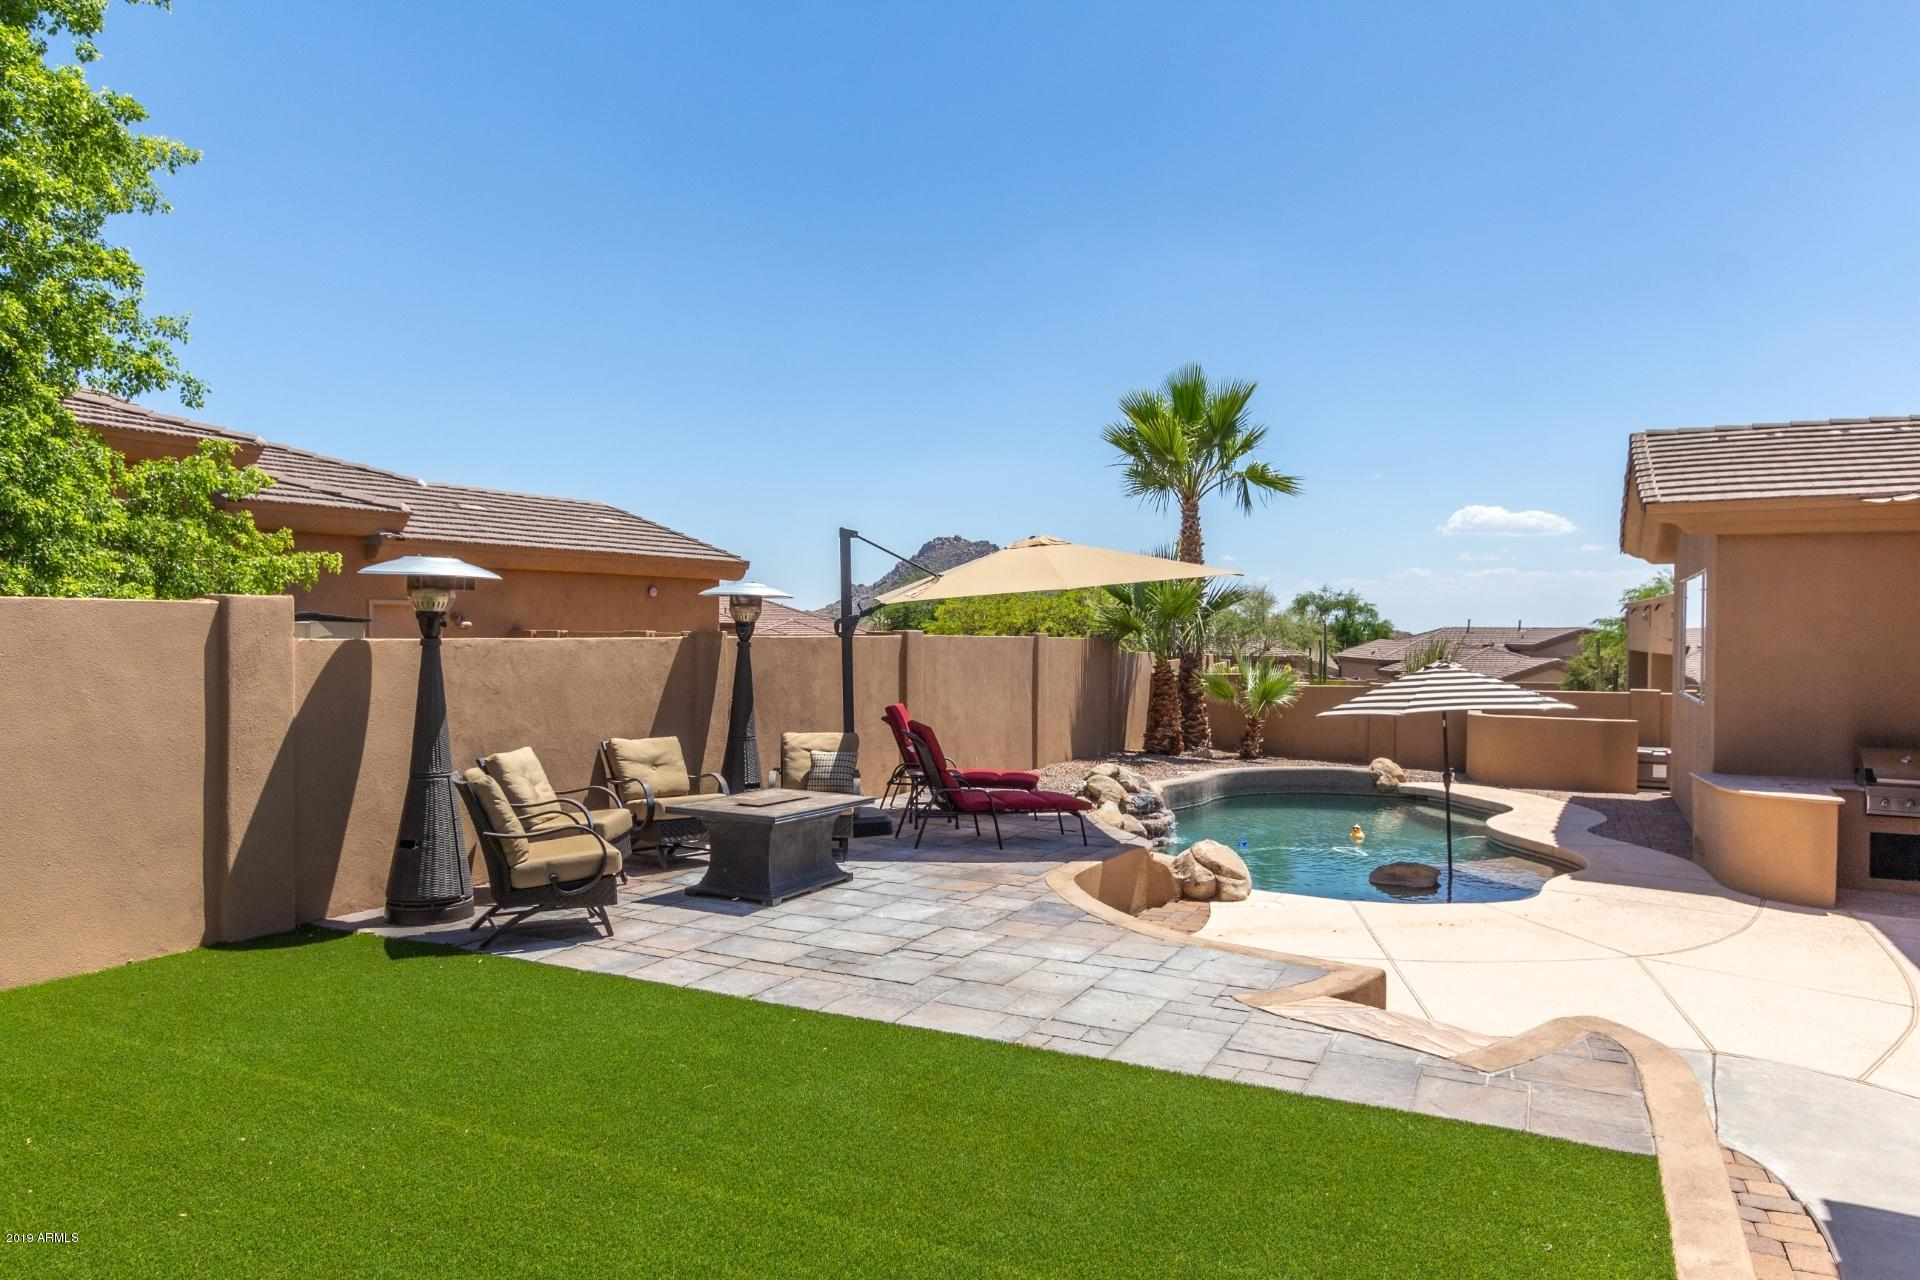 MLS 5935612 28403 N 114TH Place, Scottsdale, AZ 85262 Scottsdale AZ Private Pool